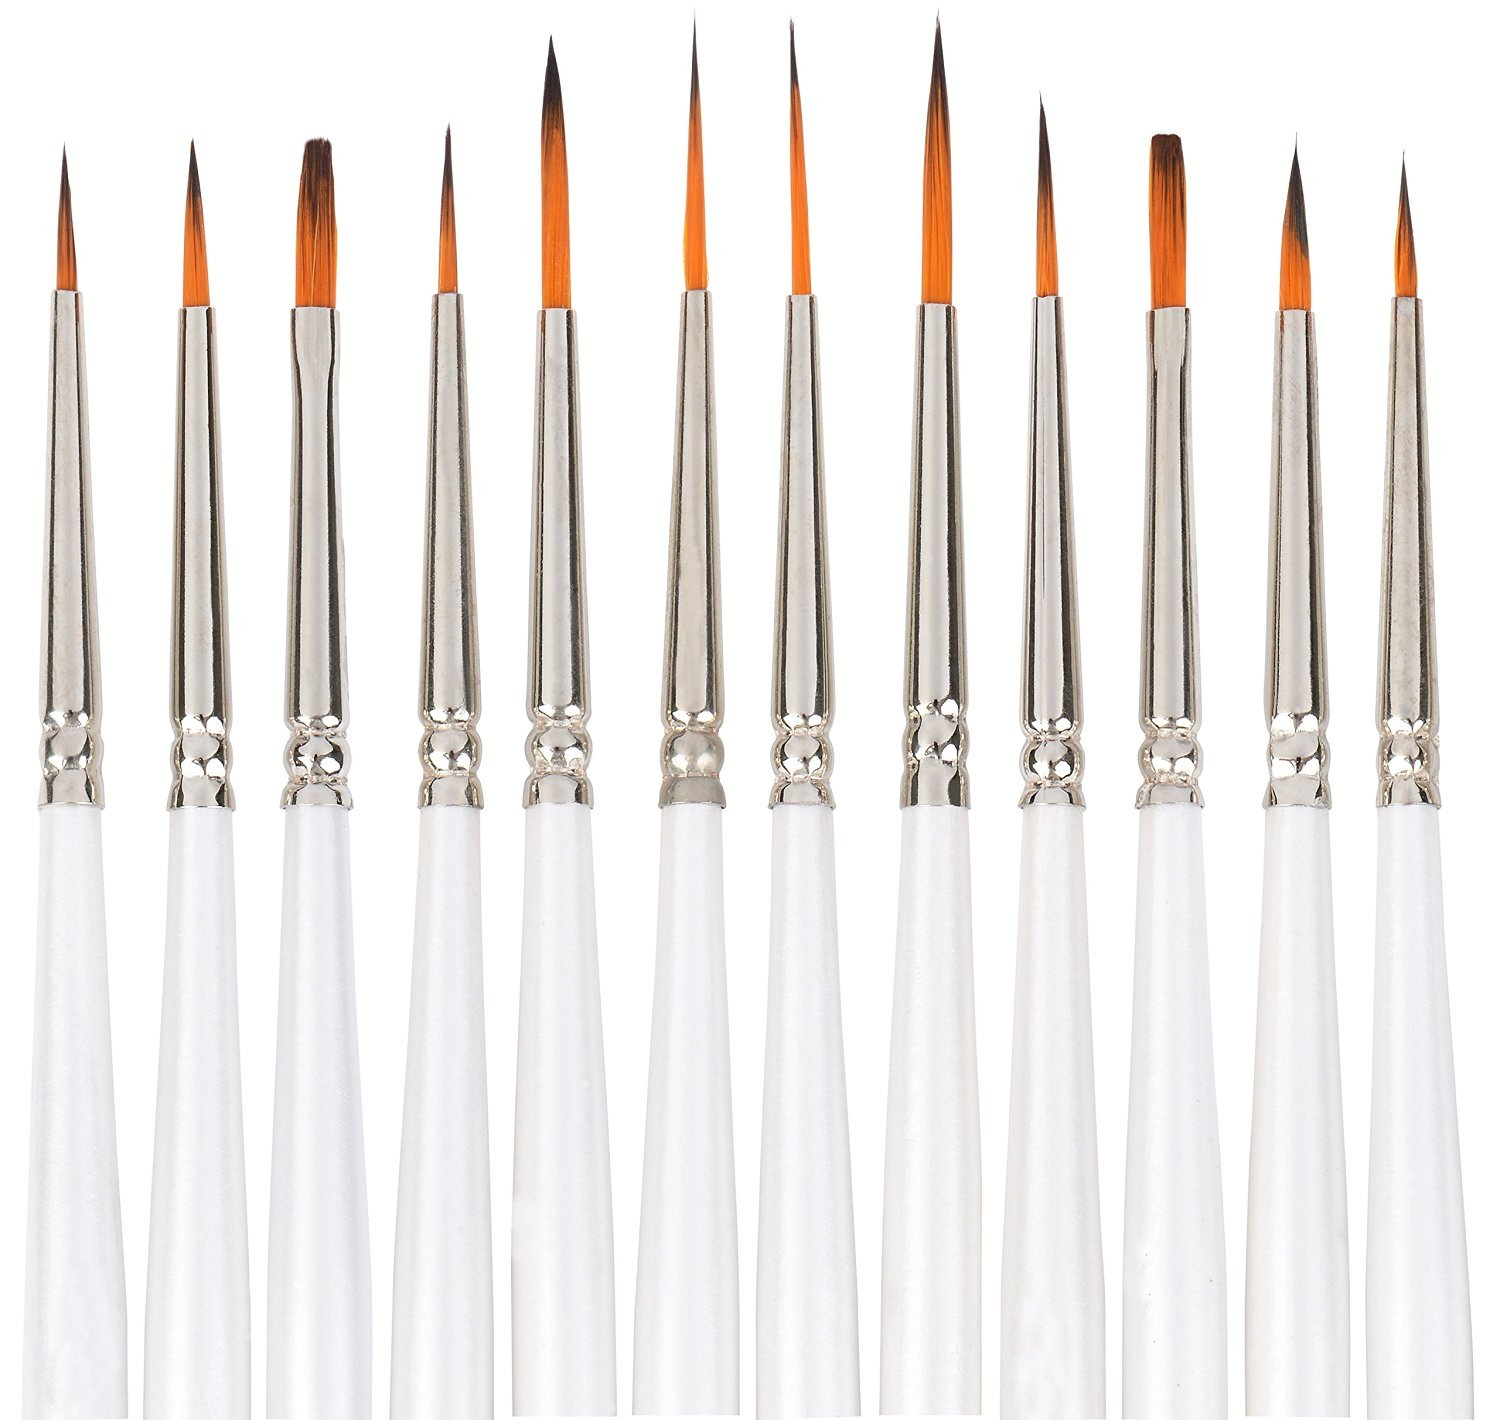 Painting Brushes, Dowswin Watercolor Brushes 12 Pcs Miniature Detail Paint Brushes for Watercolor & Acrylic Painting